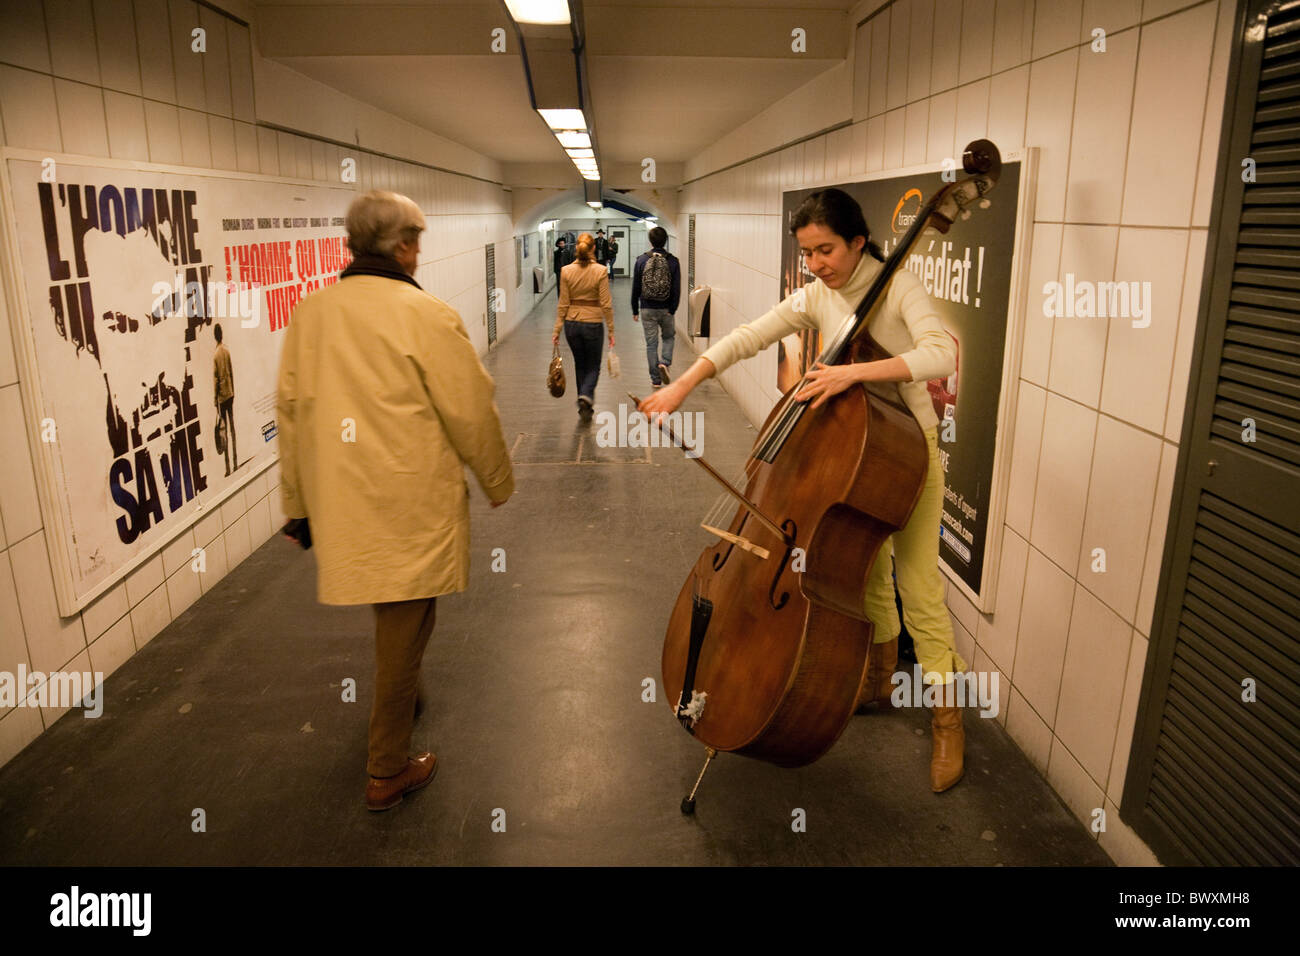 A female busker playing classical music on a double bass in the metro, the Louvre, Paris France - Stock Image